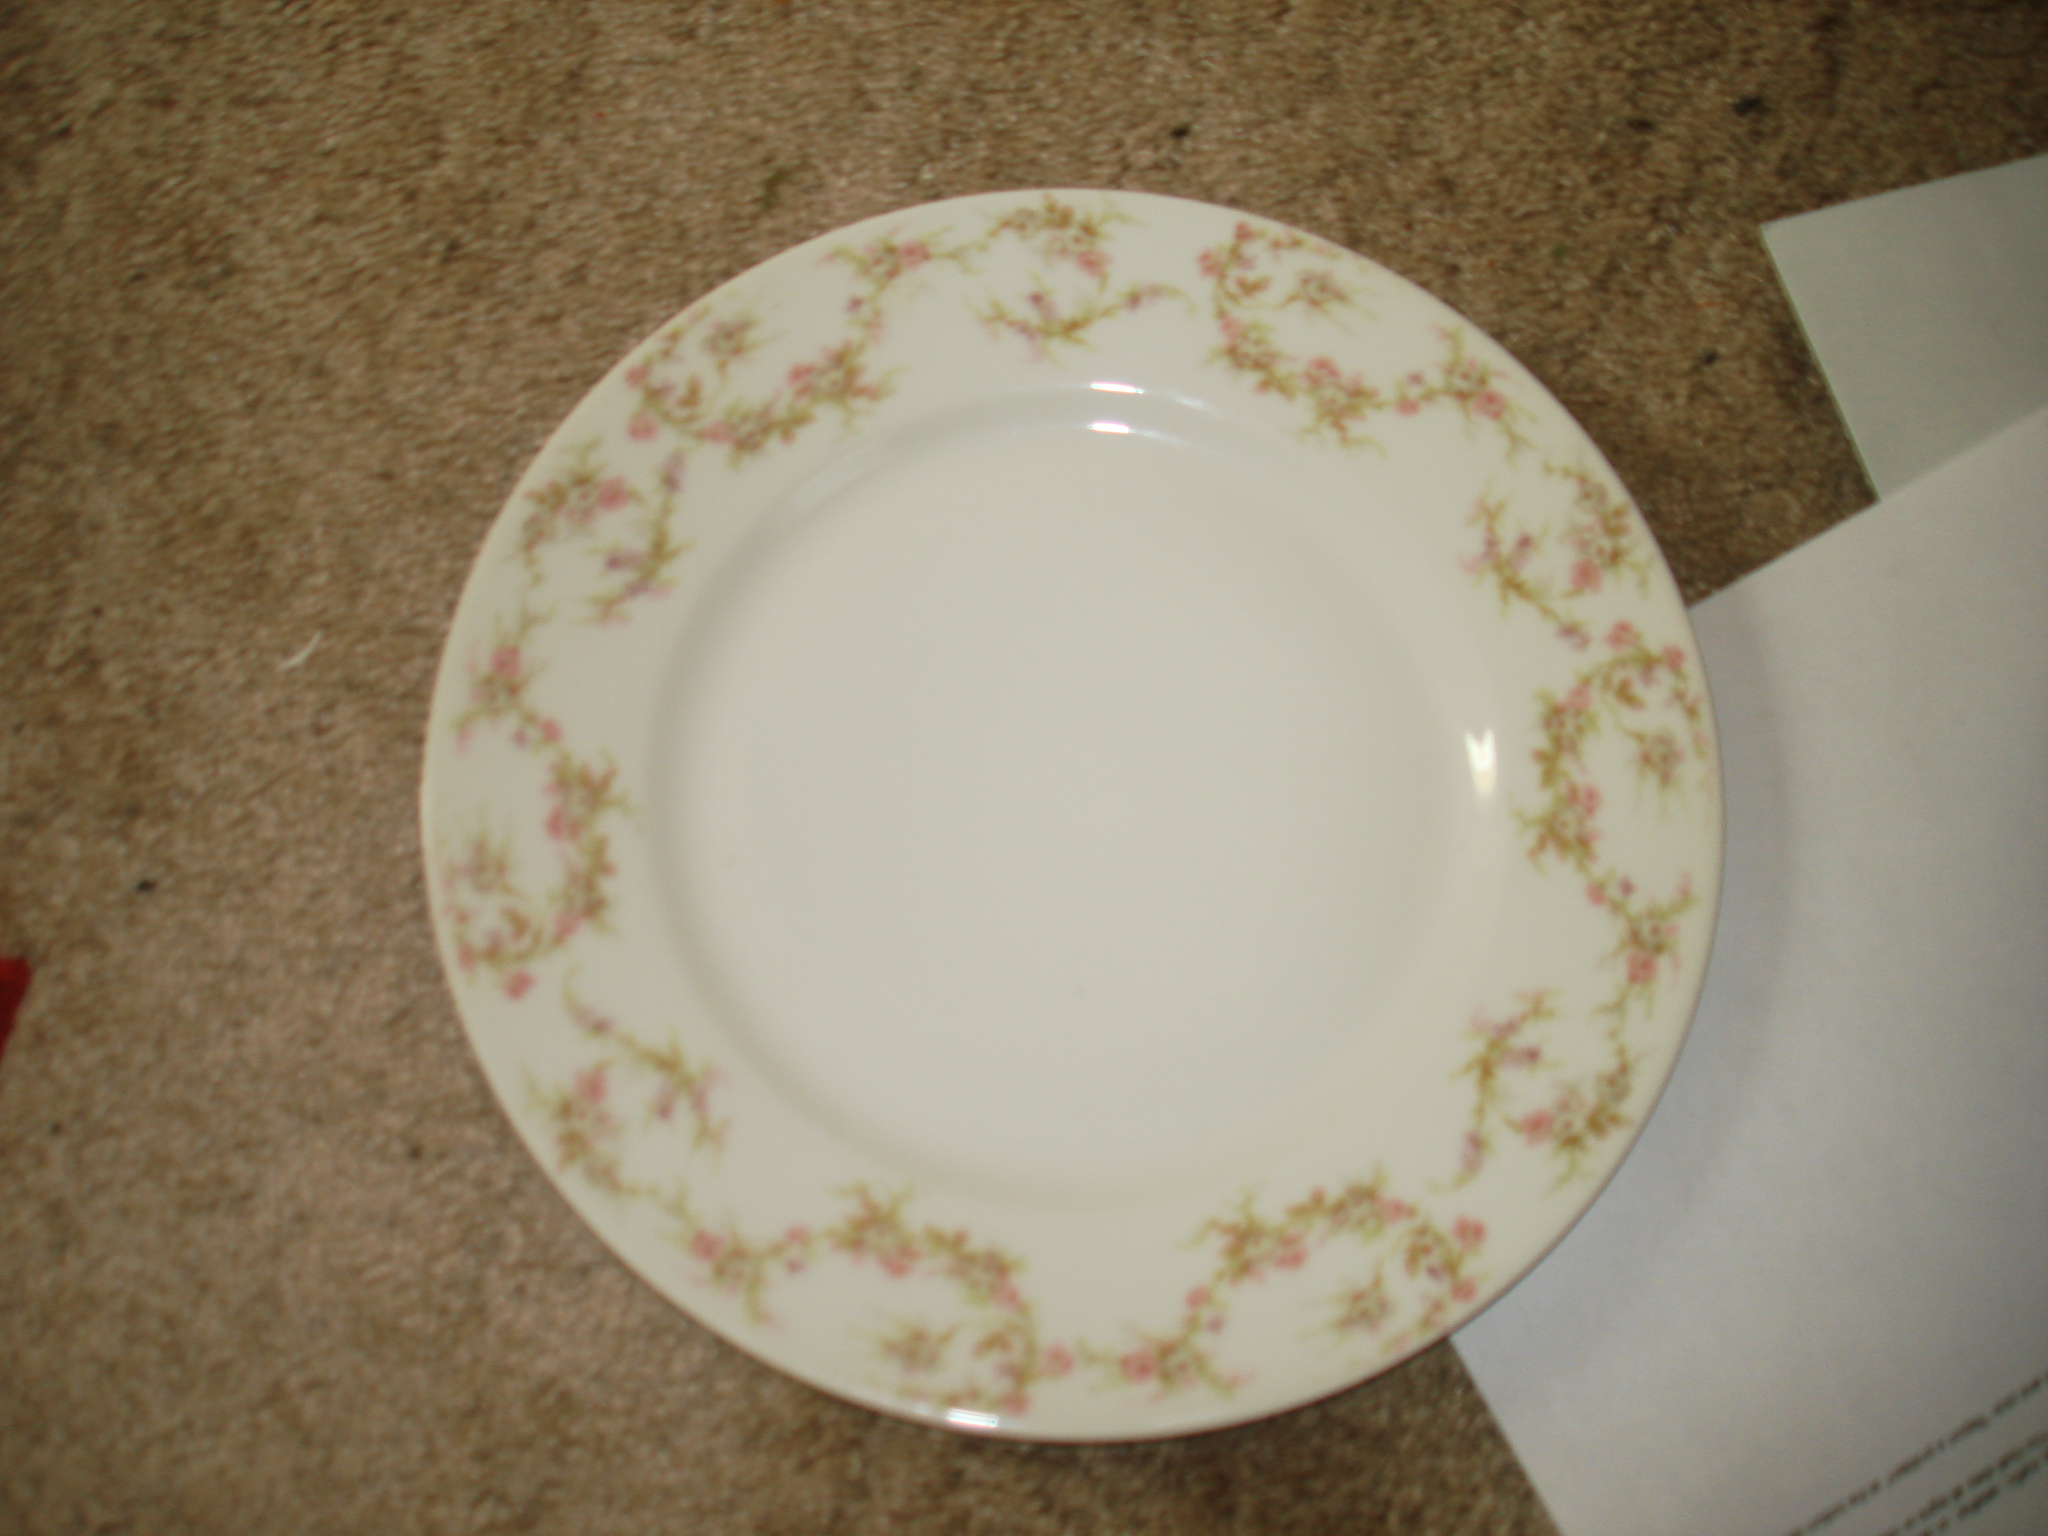 I have just purchased this THEODORE HAVILAND, LIMOGES FRANCE CHINA ...